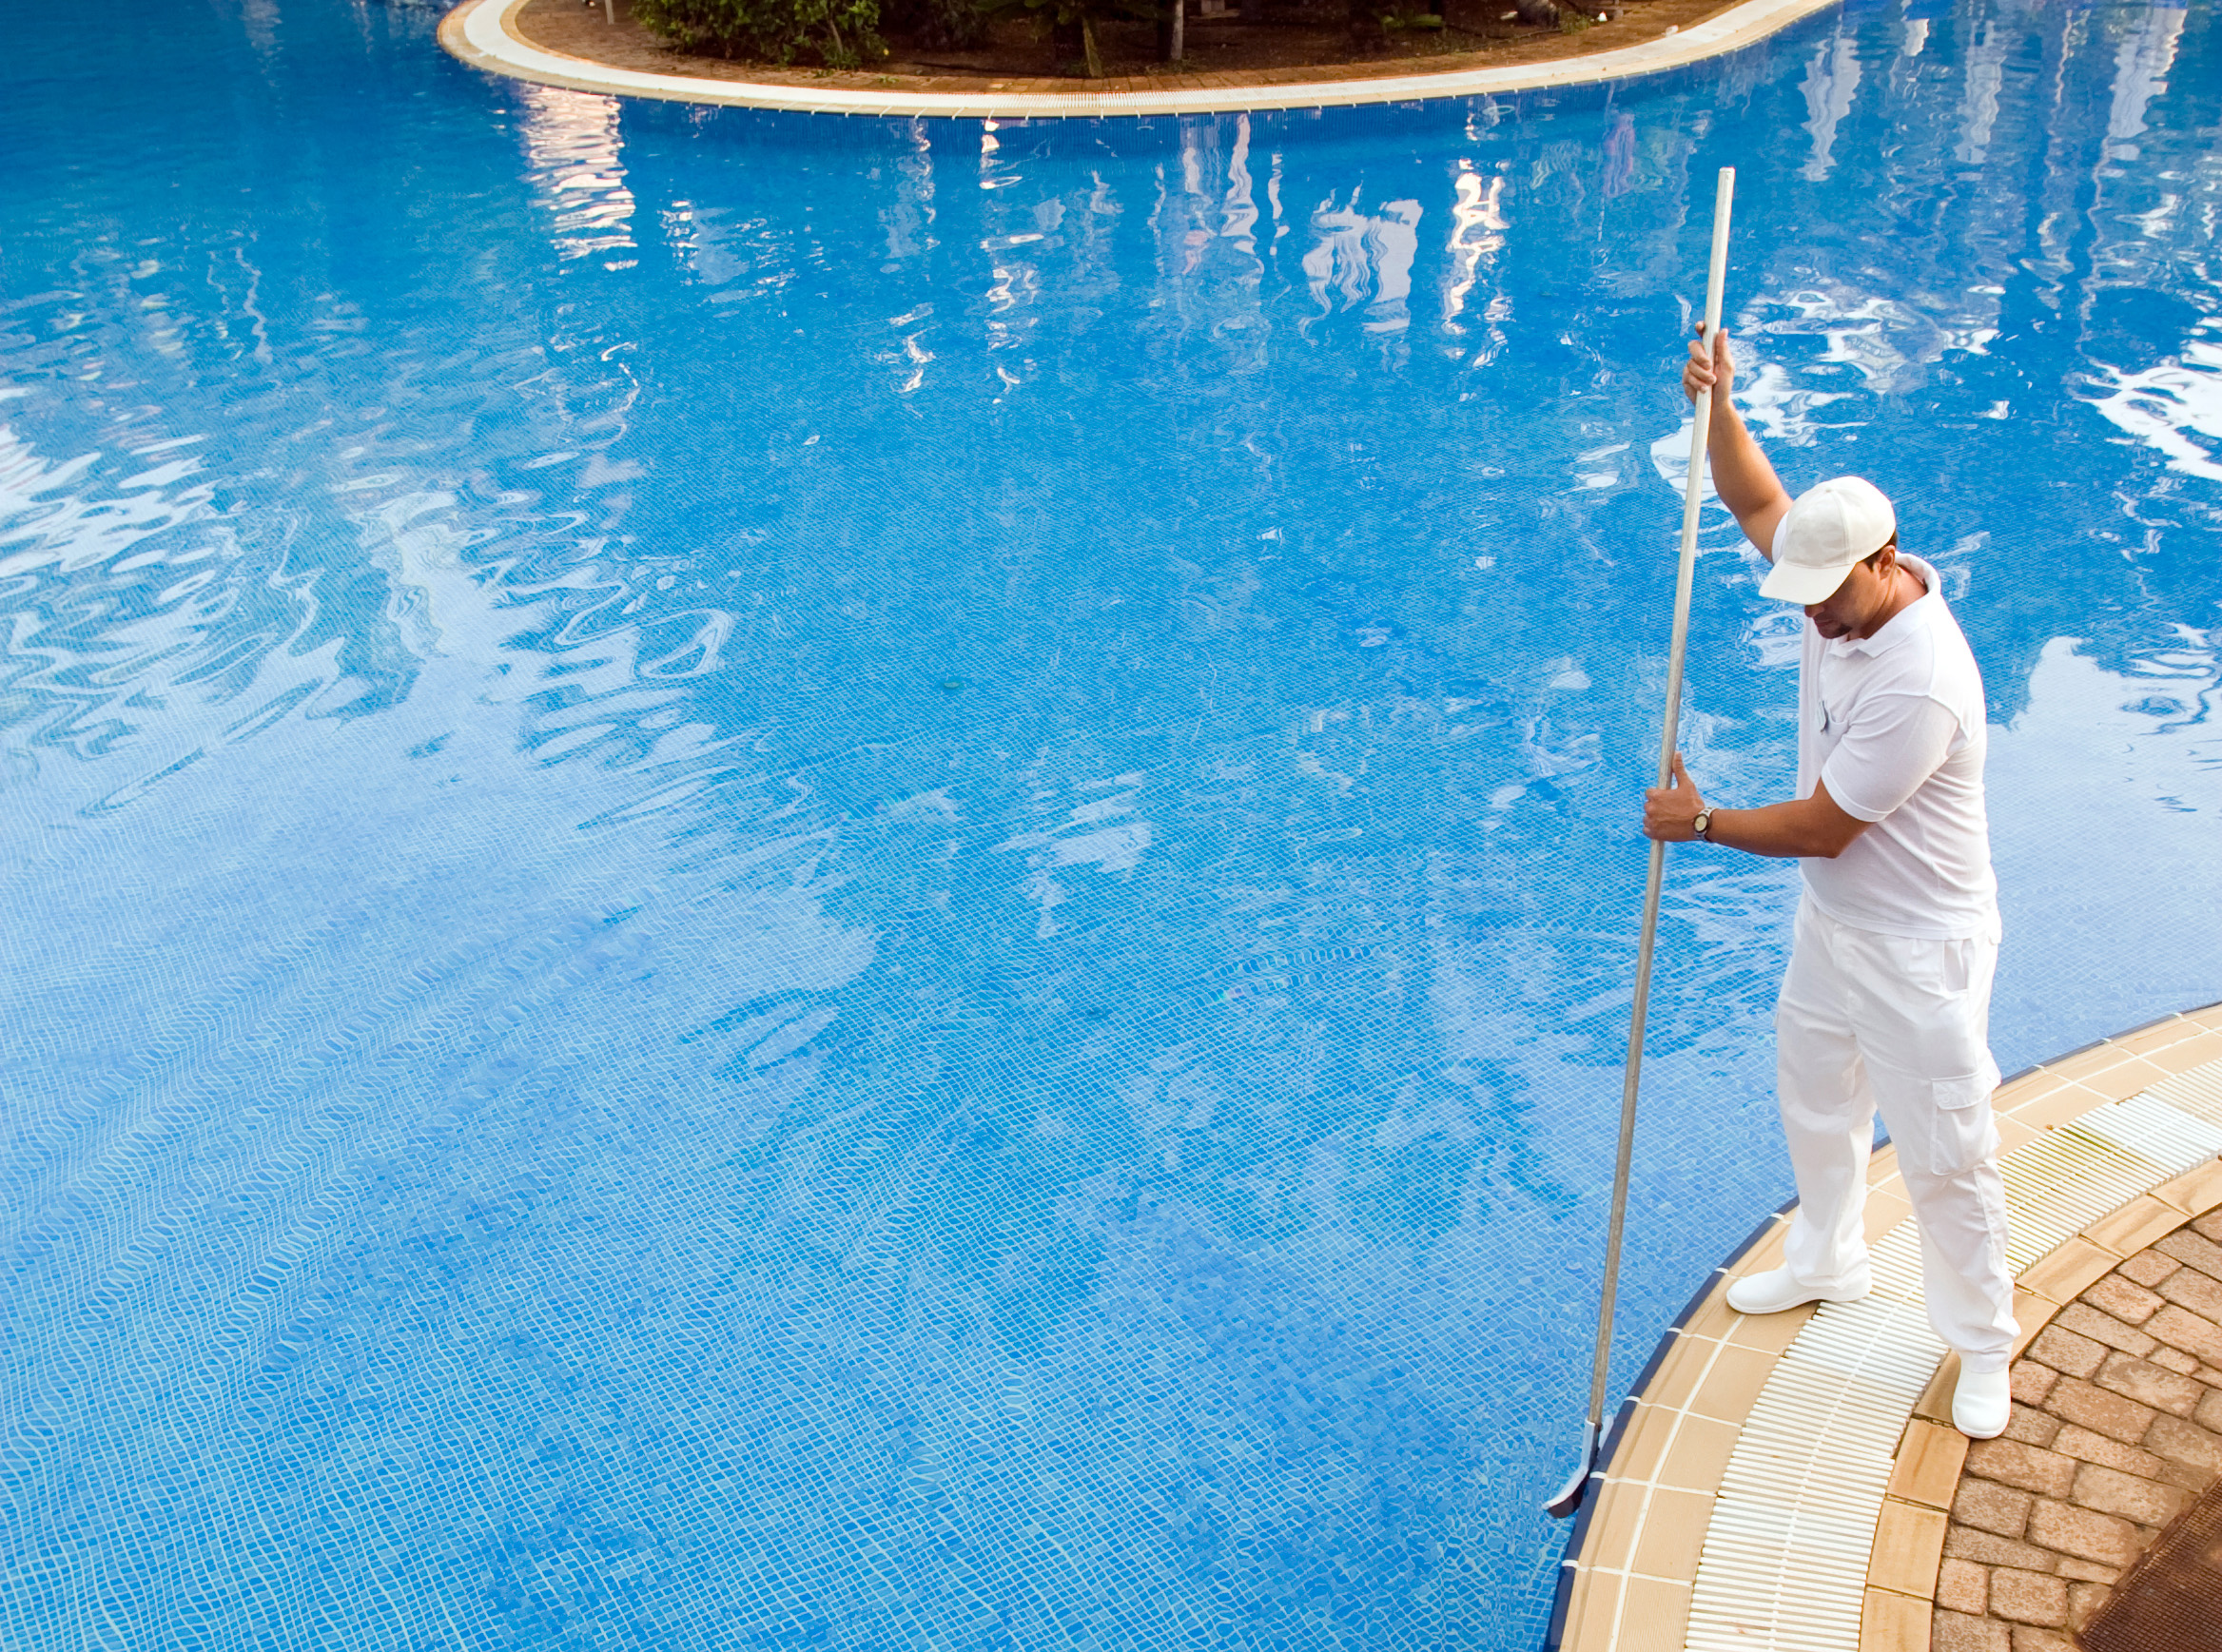 swimming pool guy sweeping the pool's walls